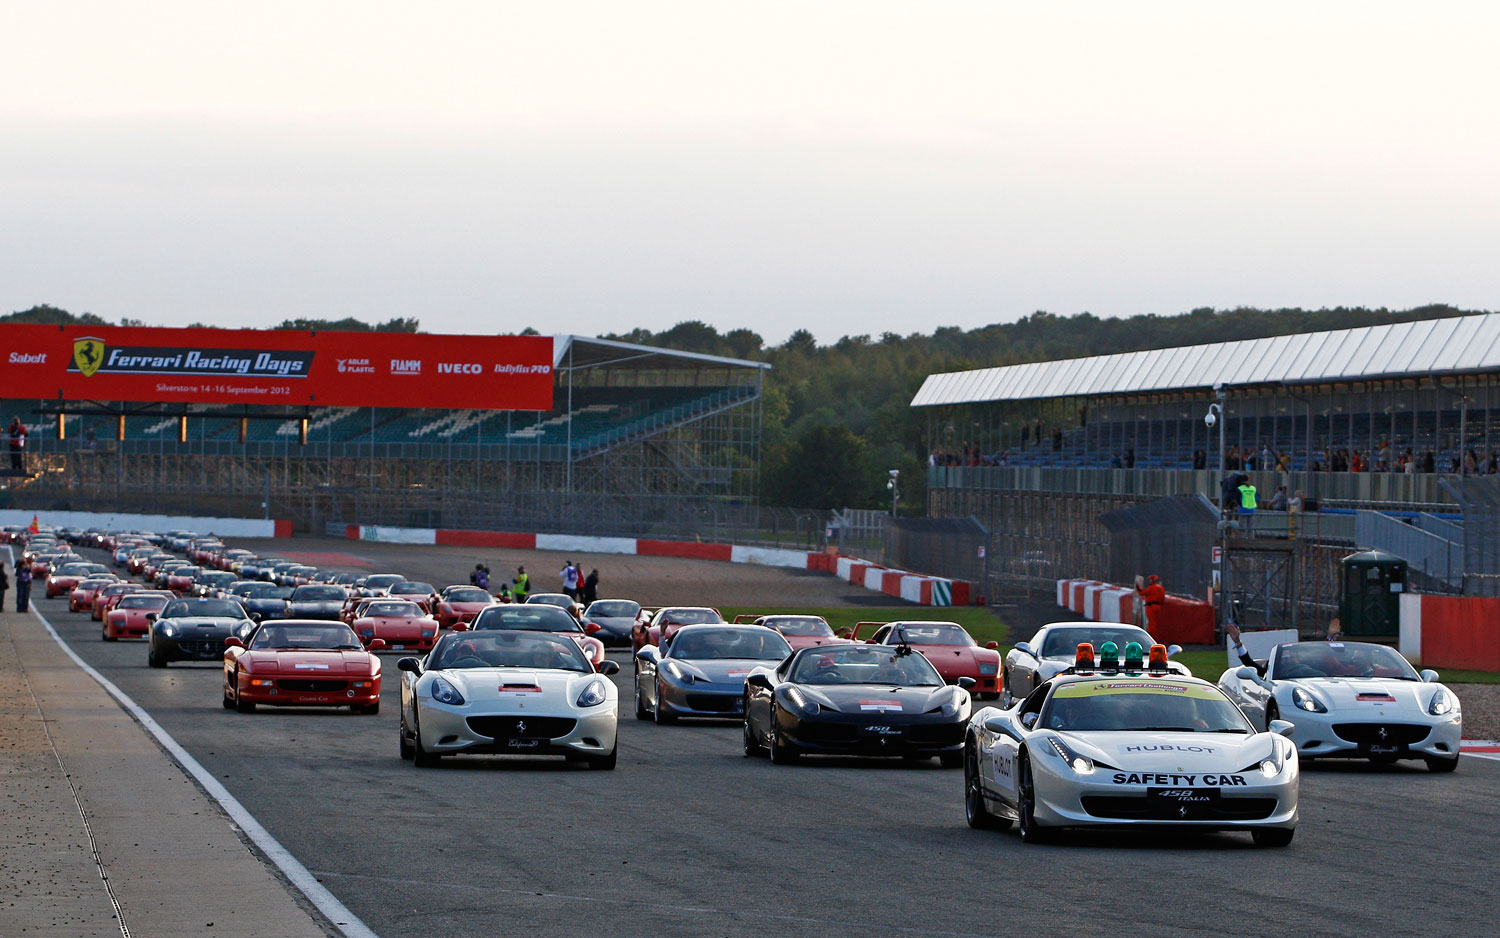 Ferrari Parade At Silverstone Circuit View From Front1